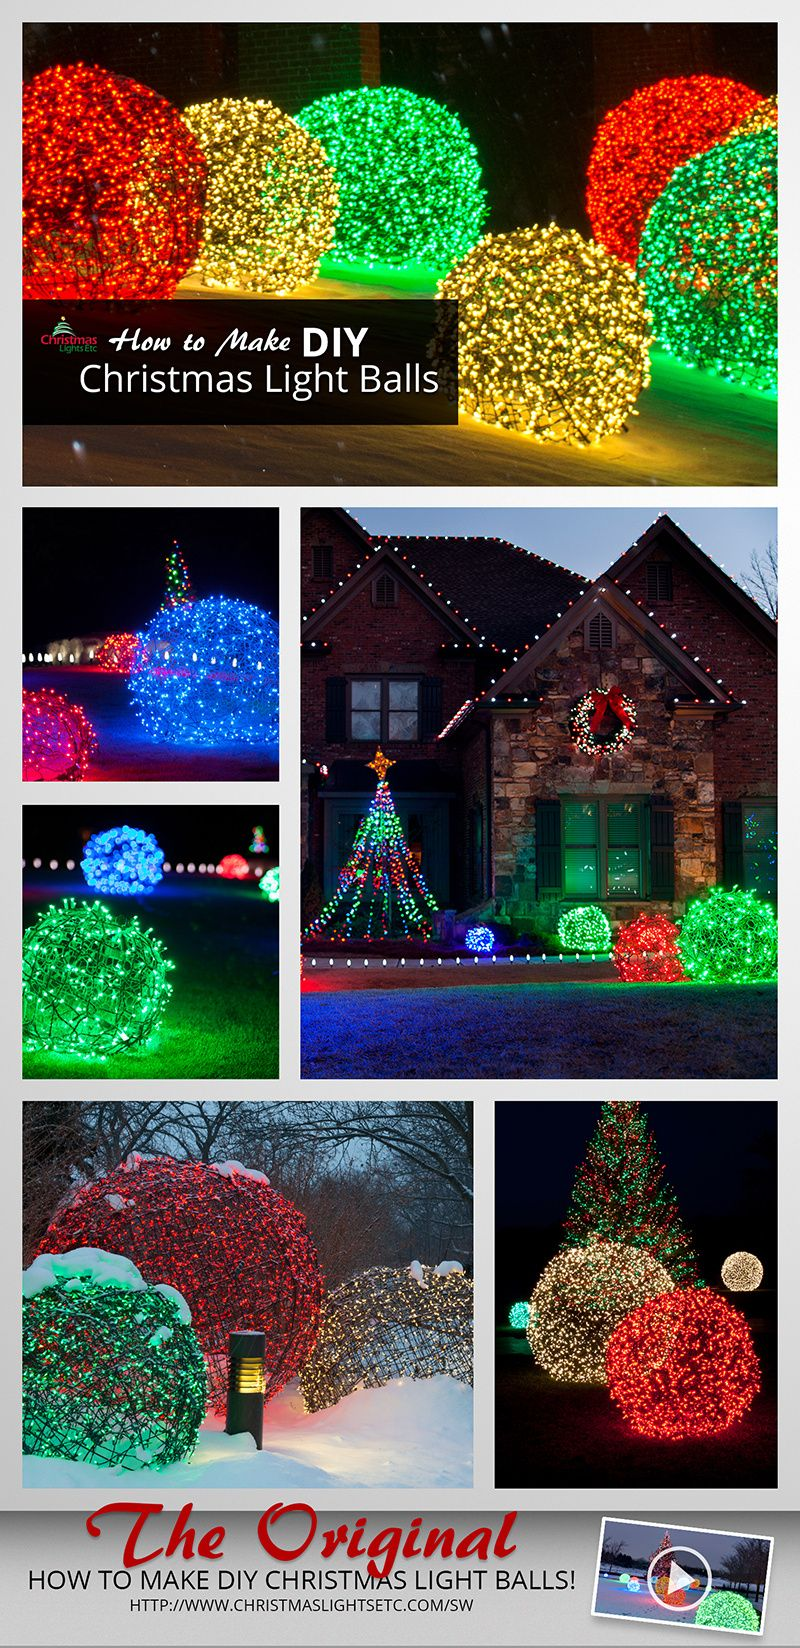 Miniature Christmas Lights Wiring Diagram Smart Car 450 Hard Tree Free For You How To Make Light Balls Our Favorite Diy Ideas Rh Pinterest Com Schematic Led